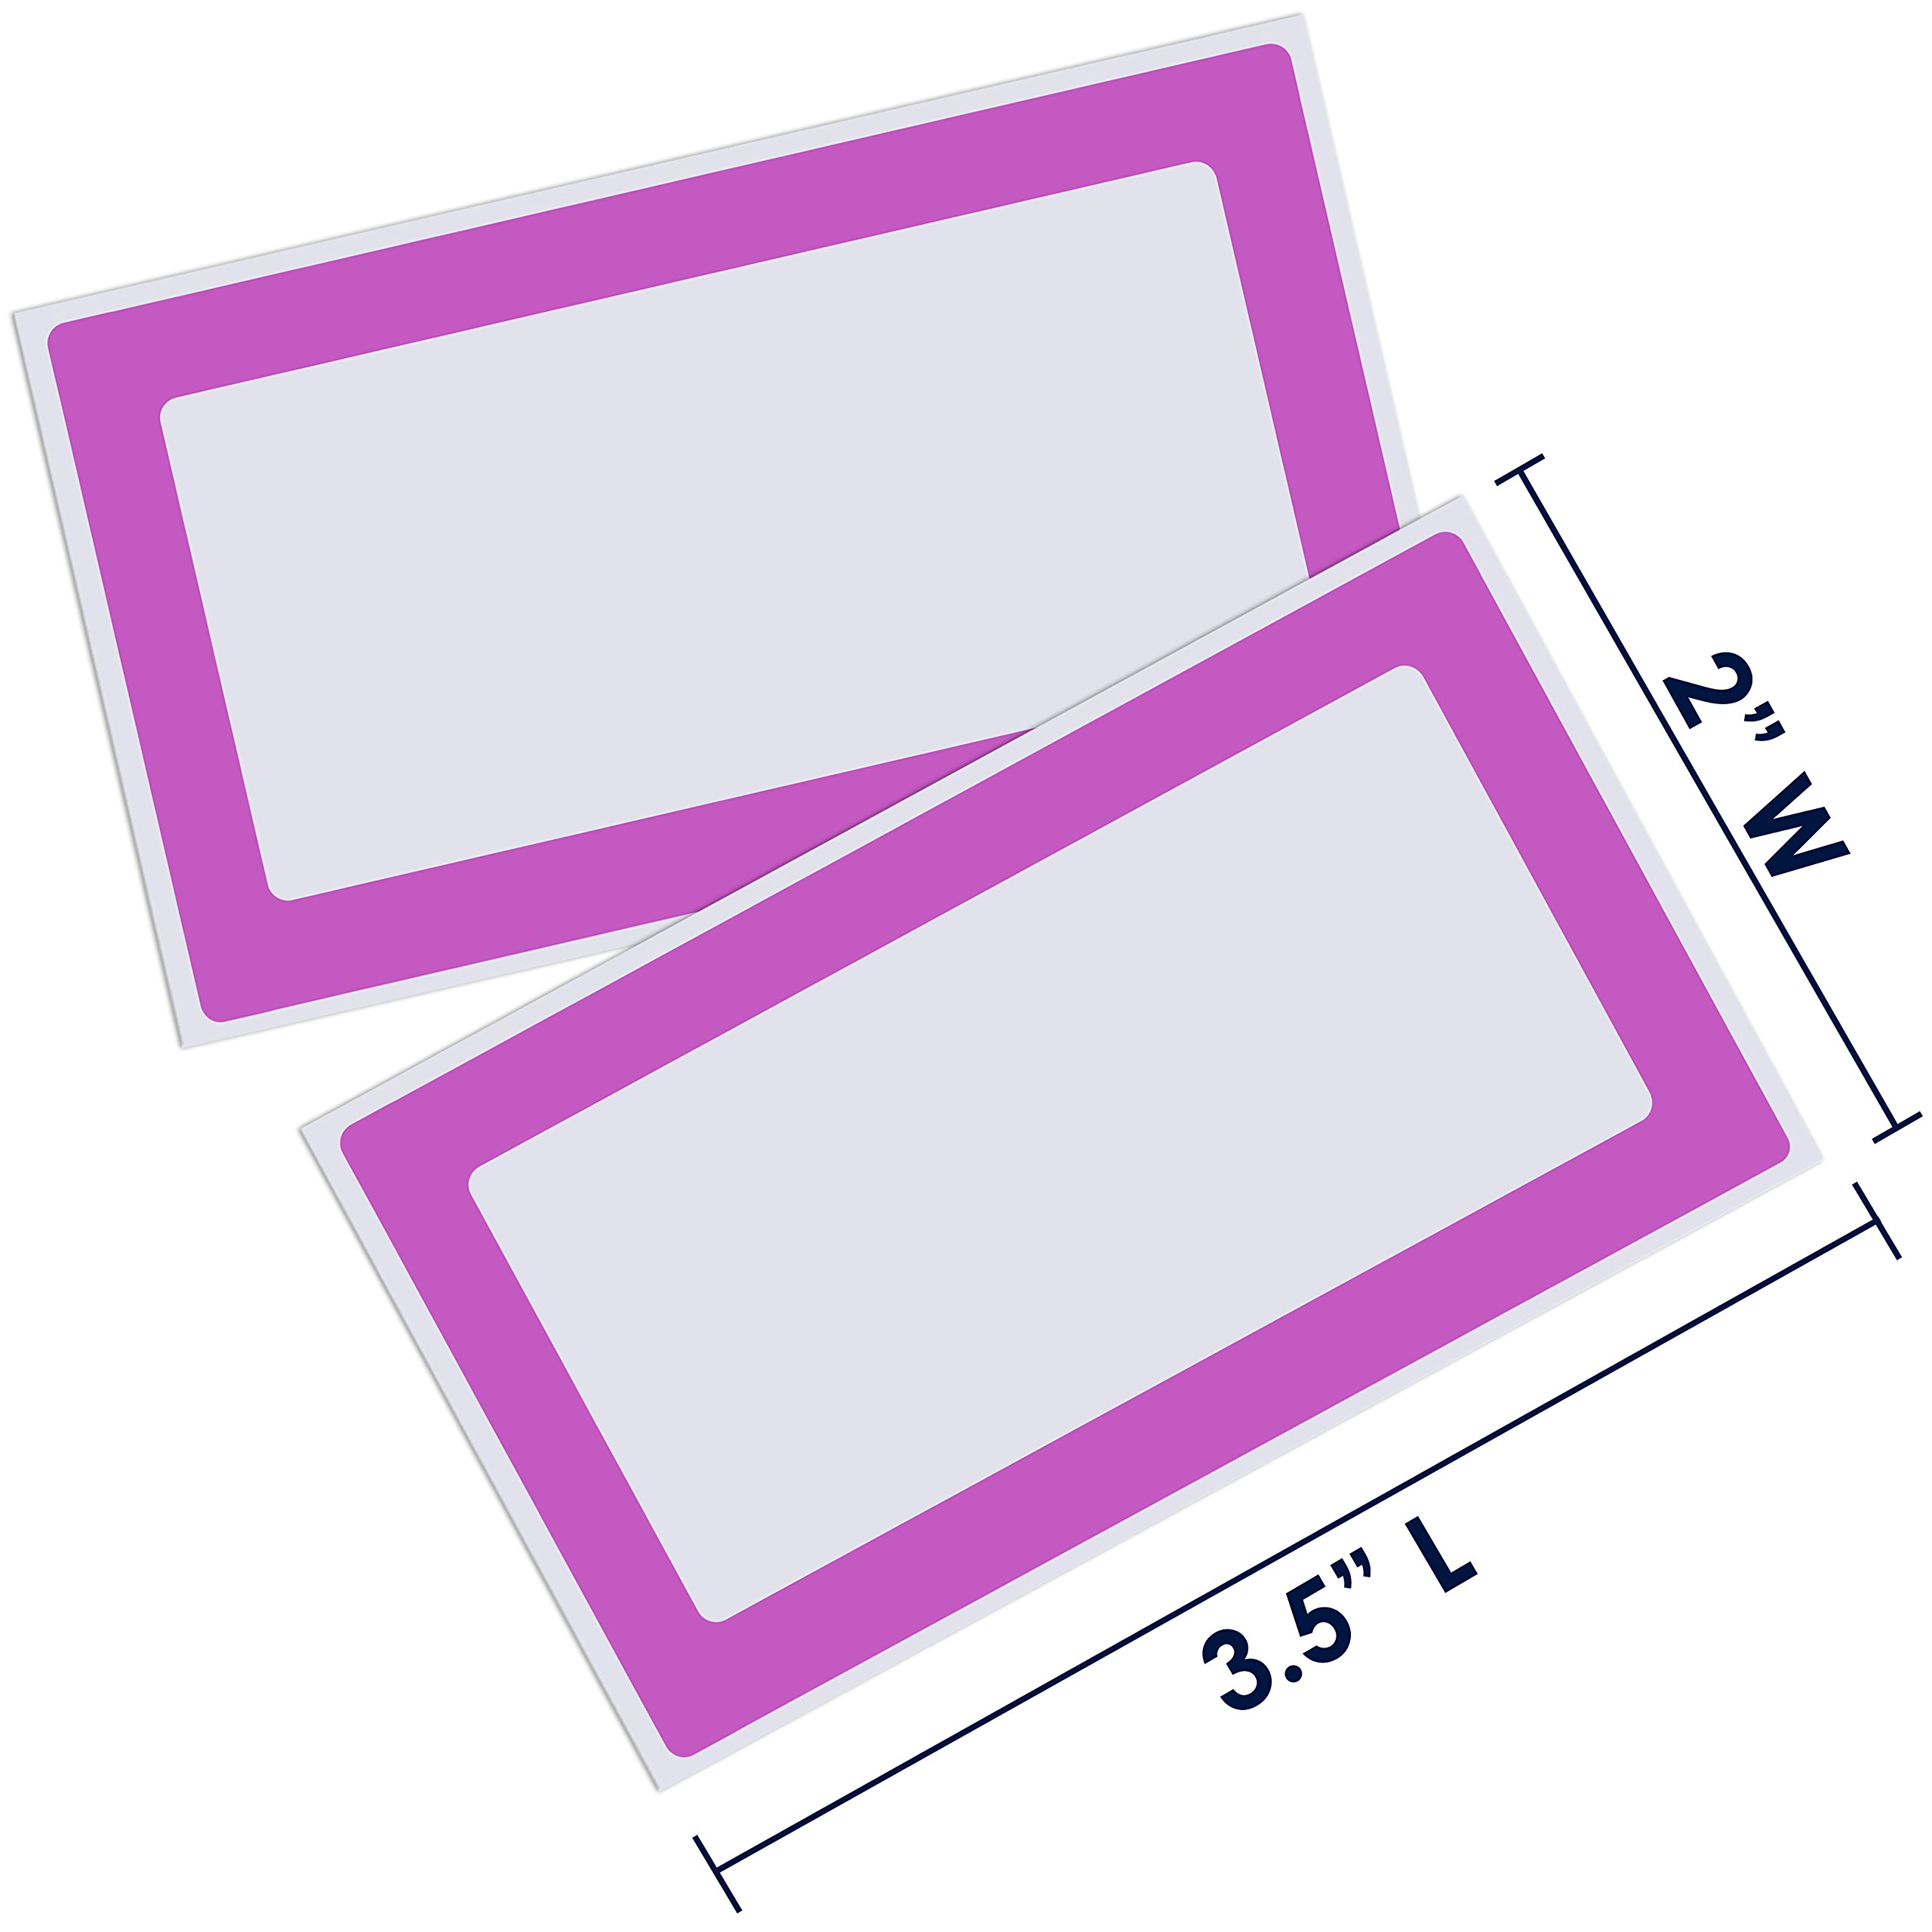 Colorful Plain Name Tag Labels - 2 Rolls 500 Stickers in Total - 3.5 x 2 inches - Nametags for Jars, Bottles, Food Containers, Folders, Birthday Parties and Kids Clothes (Purple/Purple 2 Pack) by Navy Penguin (Image #2)